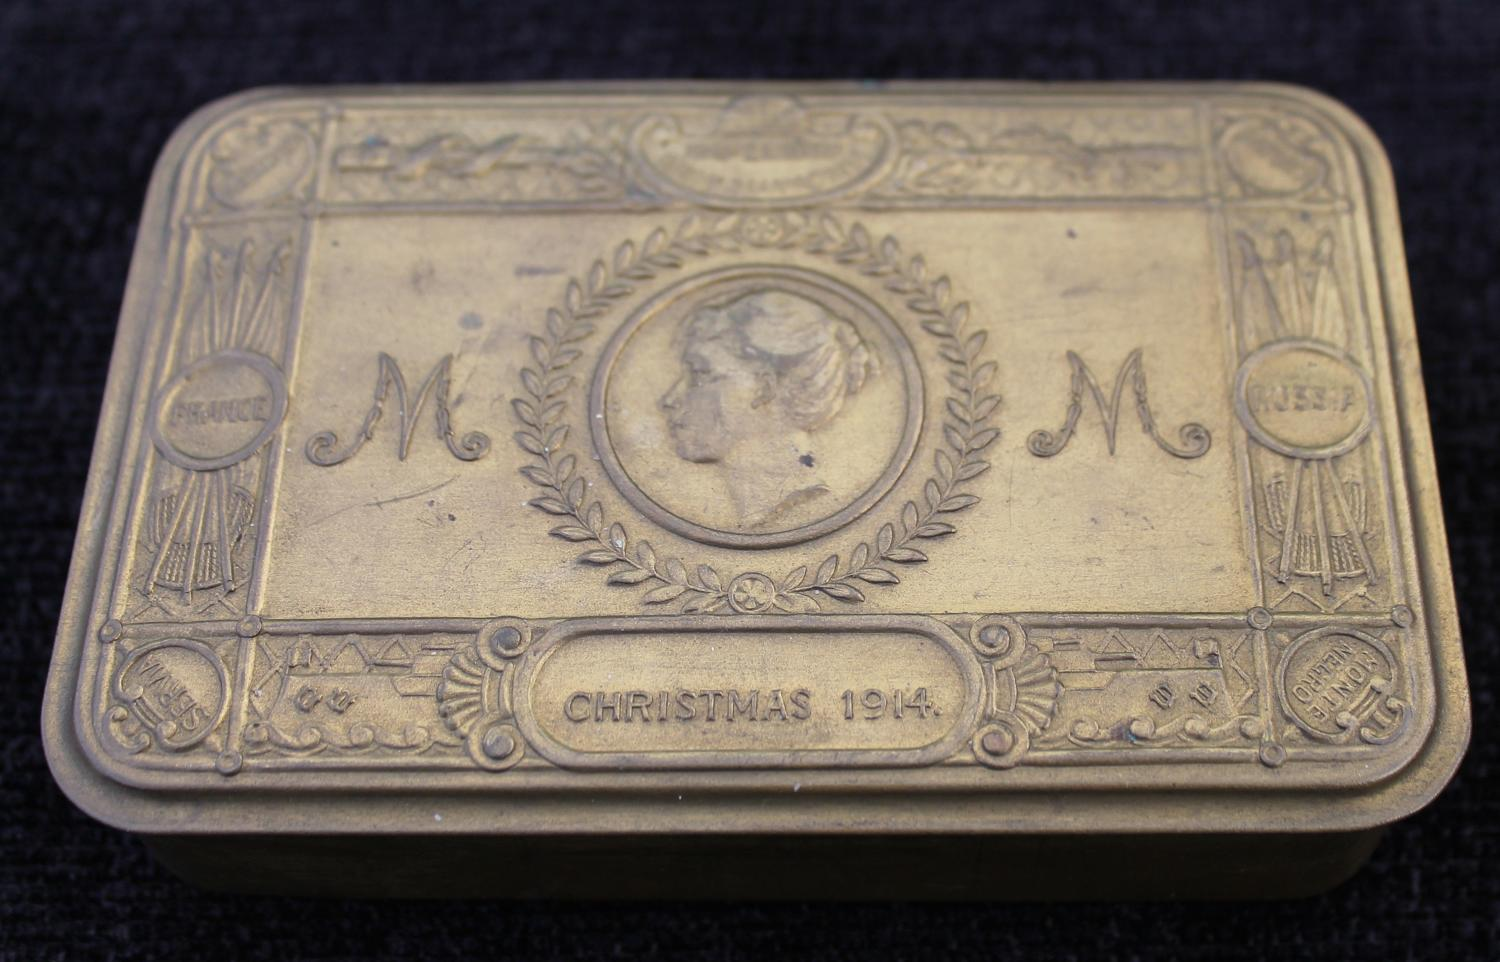 A Complete Princess Mary Gift Tin